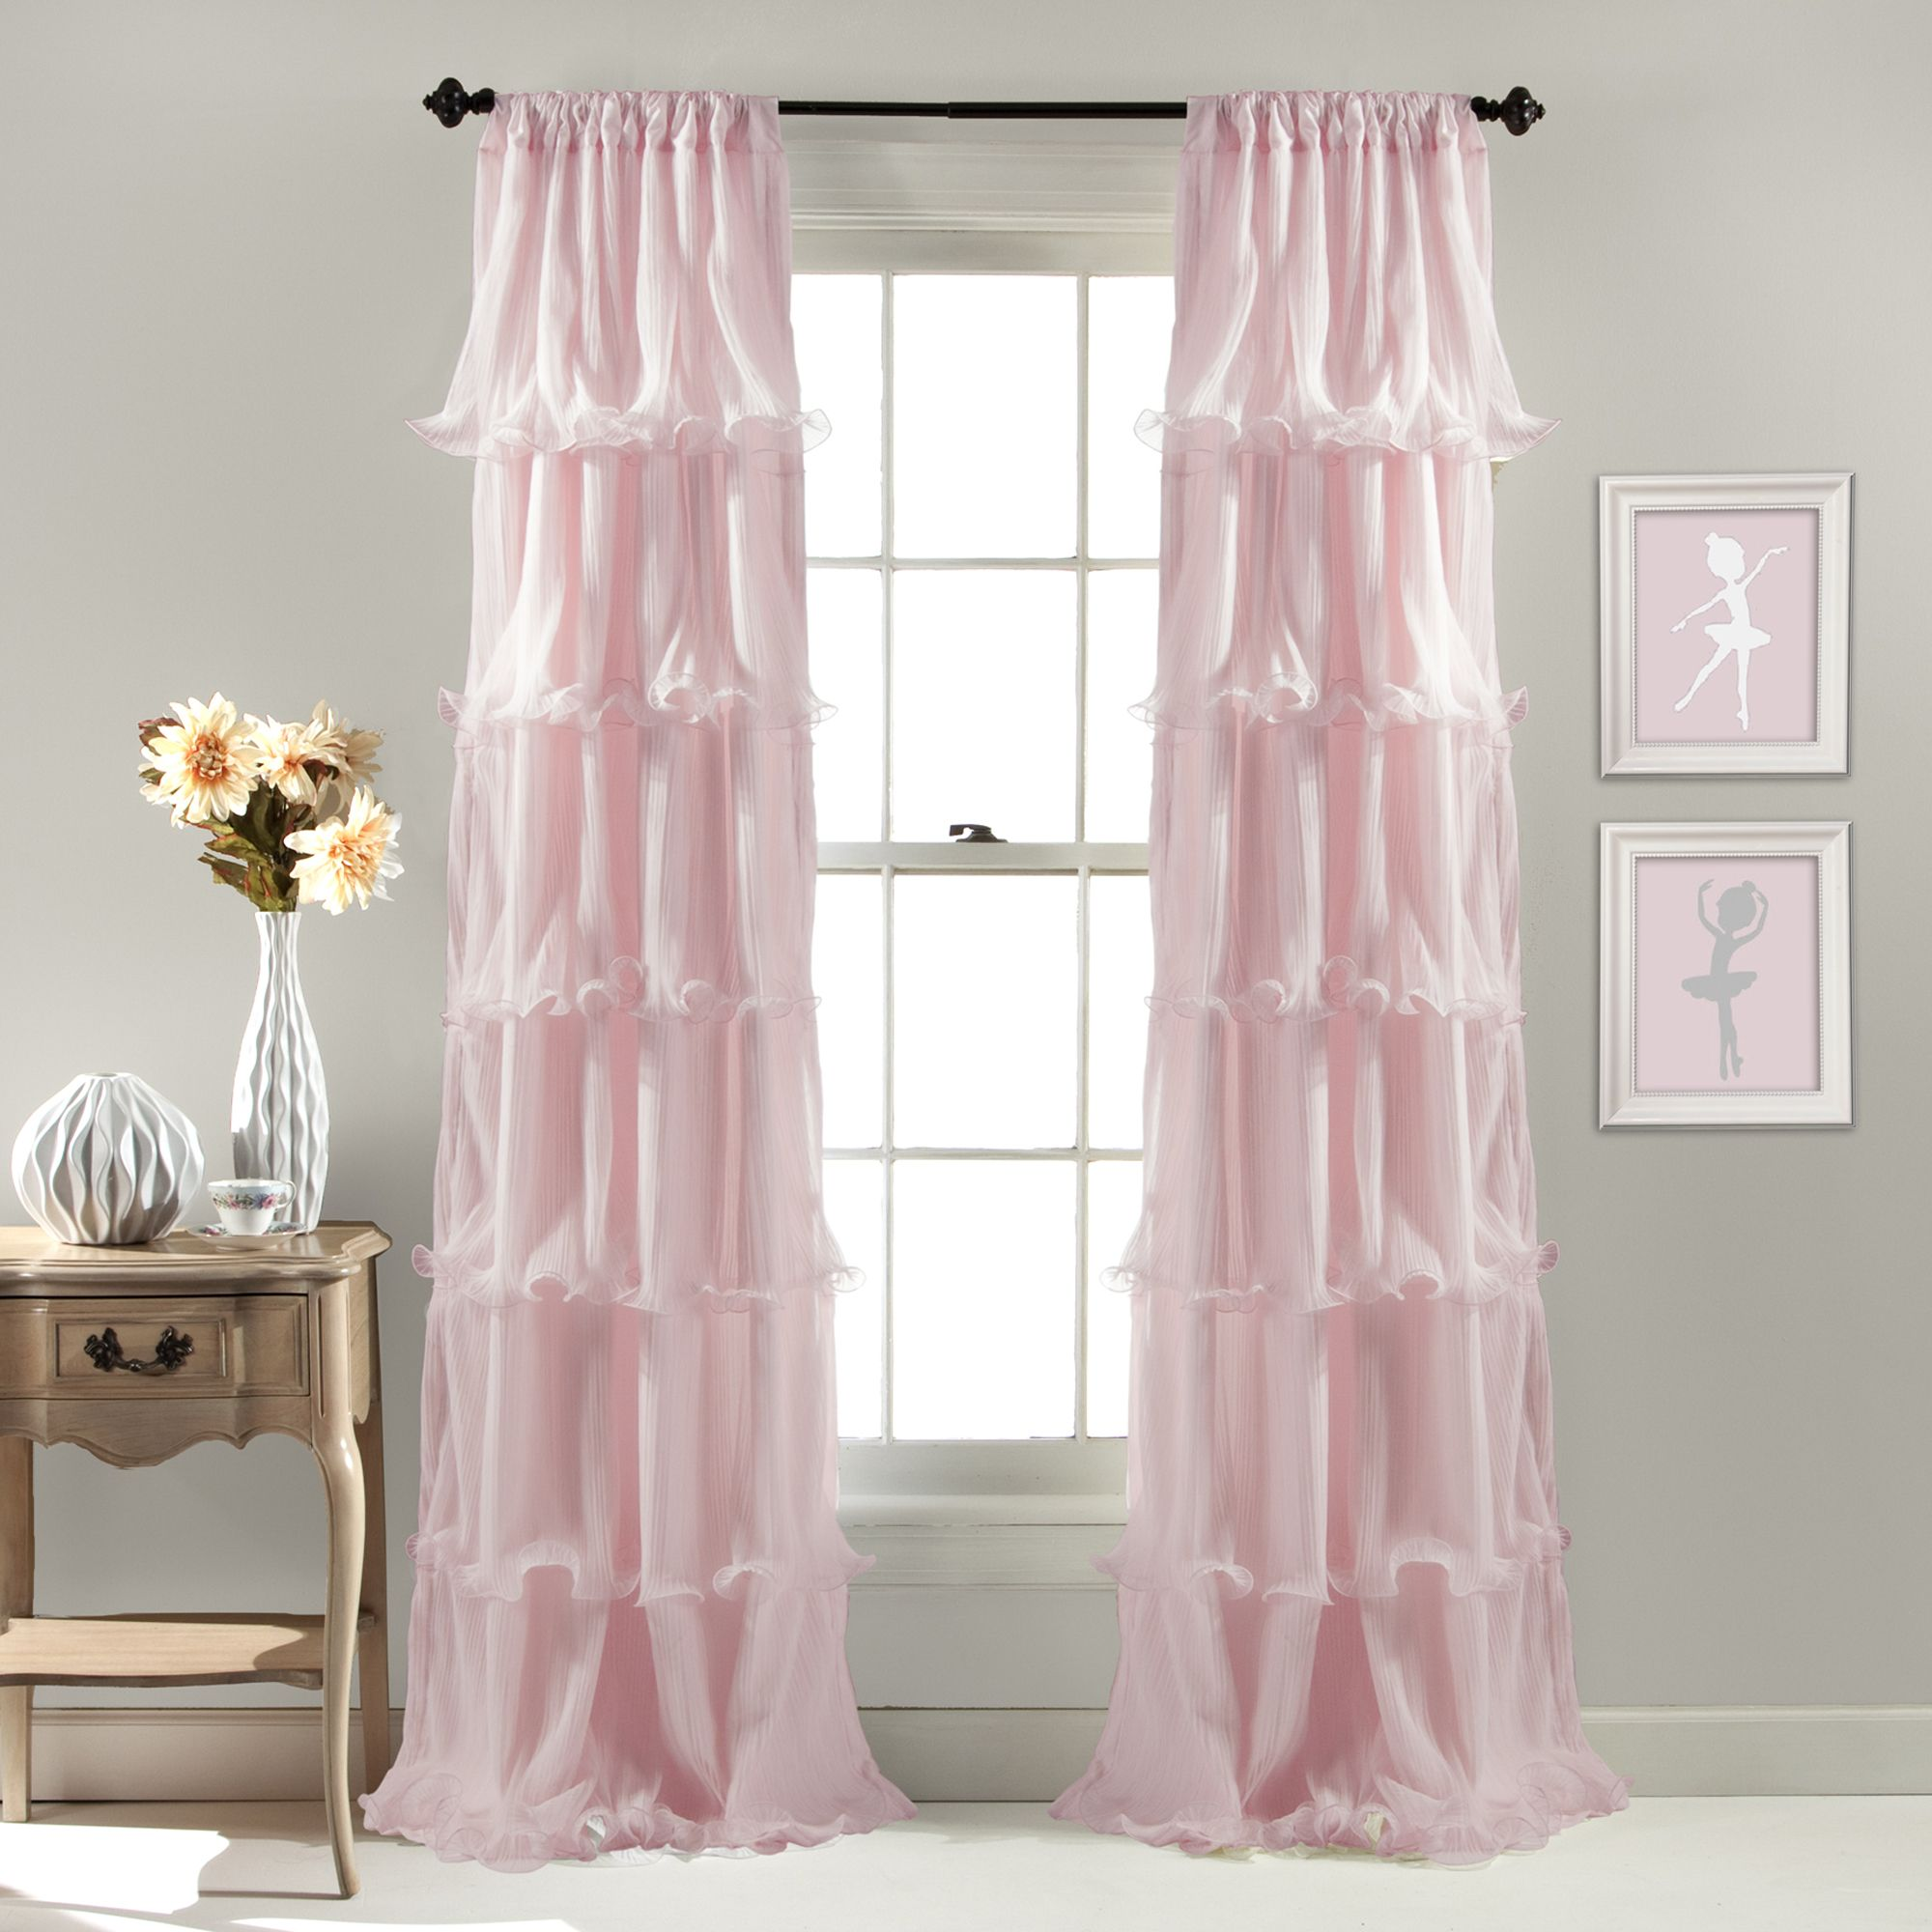 full longer curtains help diy life sleep blog to and baby home curtain blackout babycenter